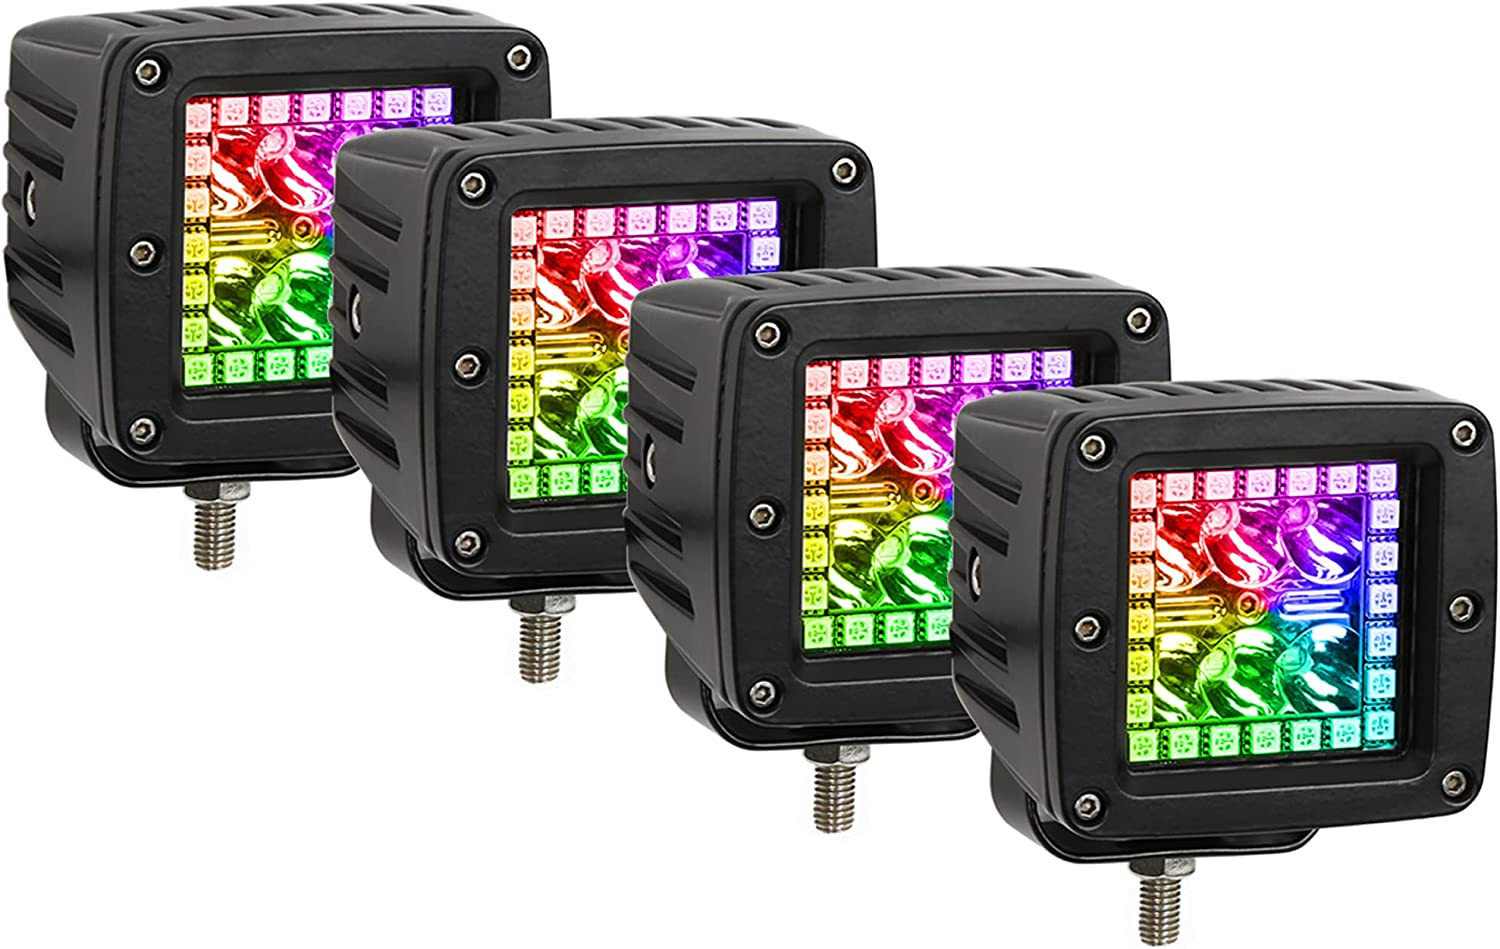 Nicoko 3 Inch 18w RGB led Works Light Offroad Lights Square pods + Waterproof Controller for Lights Truck Car Boat Driving Lamp Pack 4